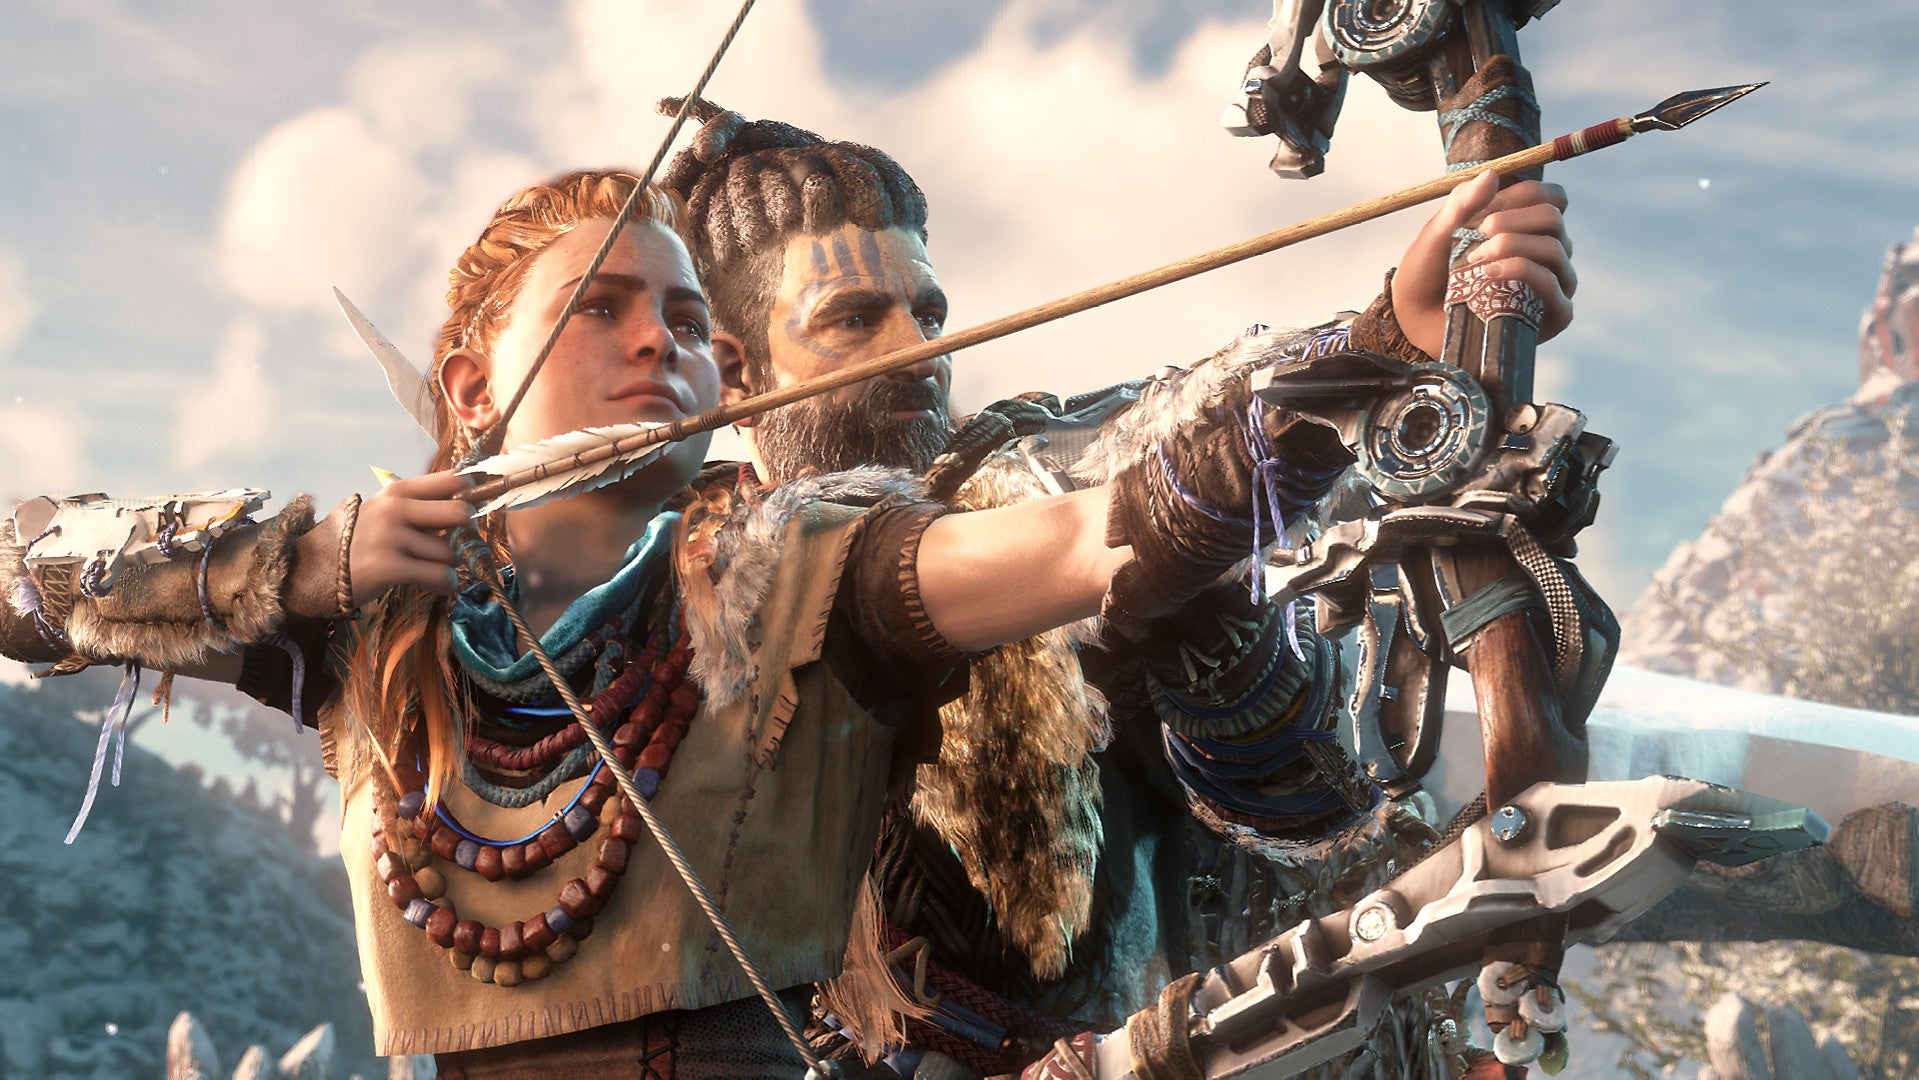 Sources: Horizon: Zero Dawn Is Coming To PC